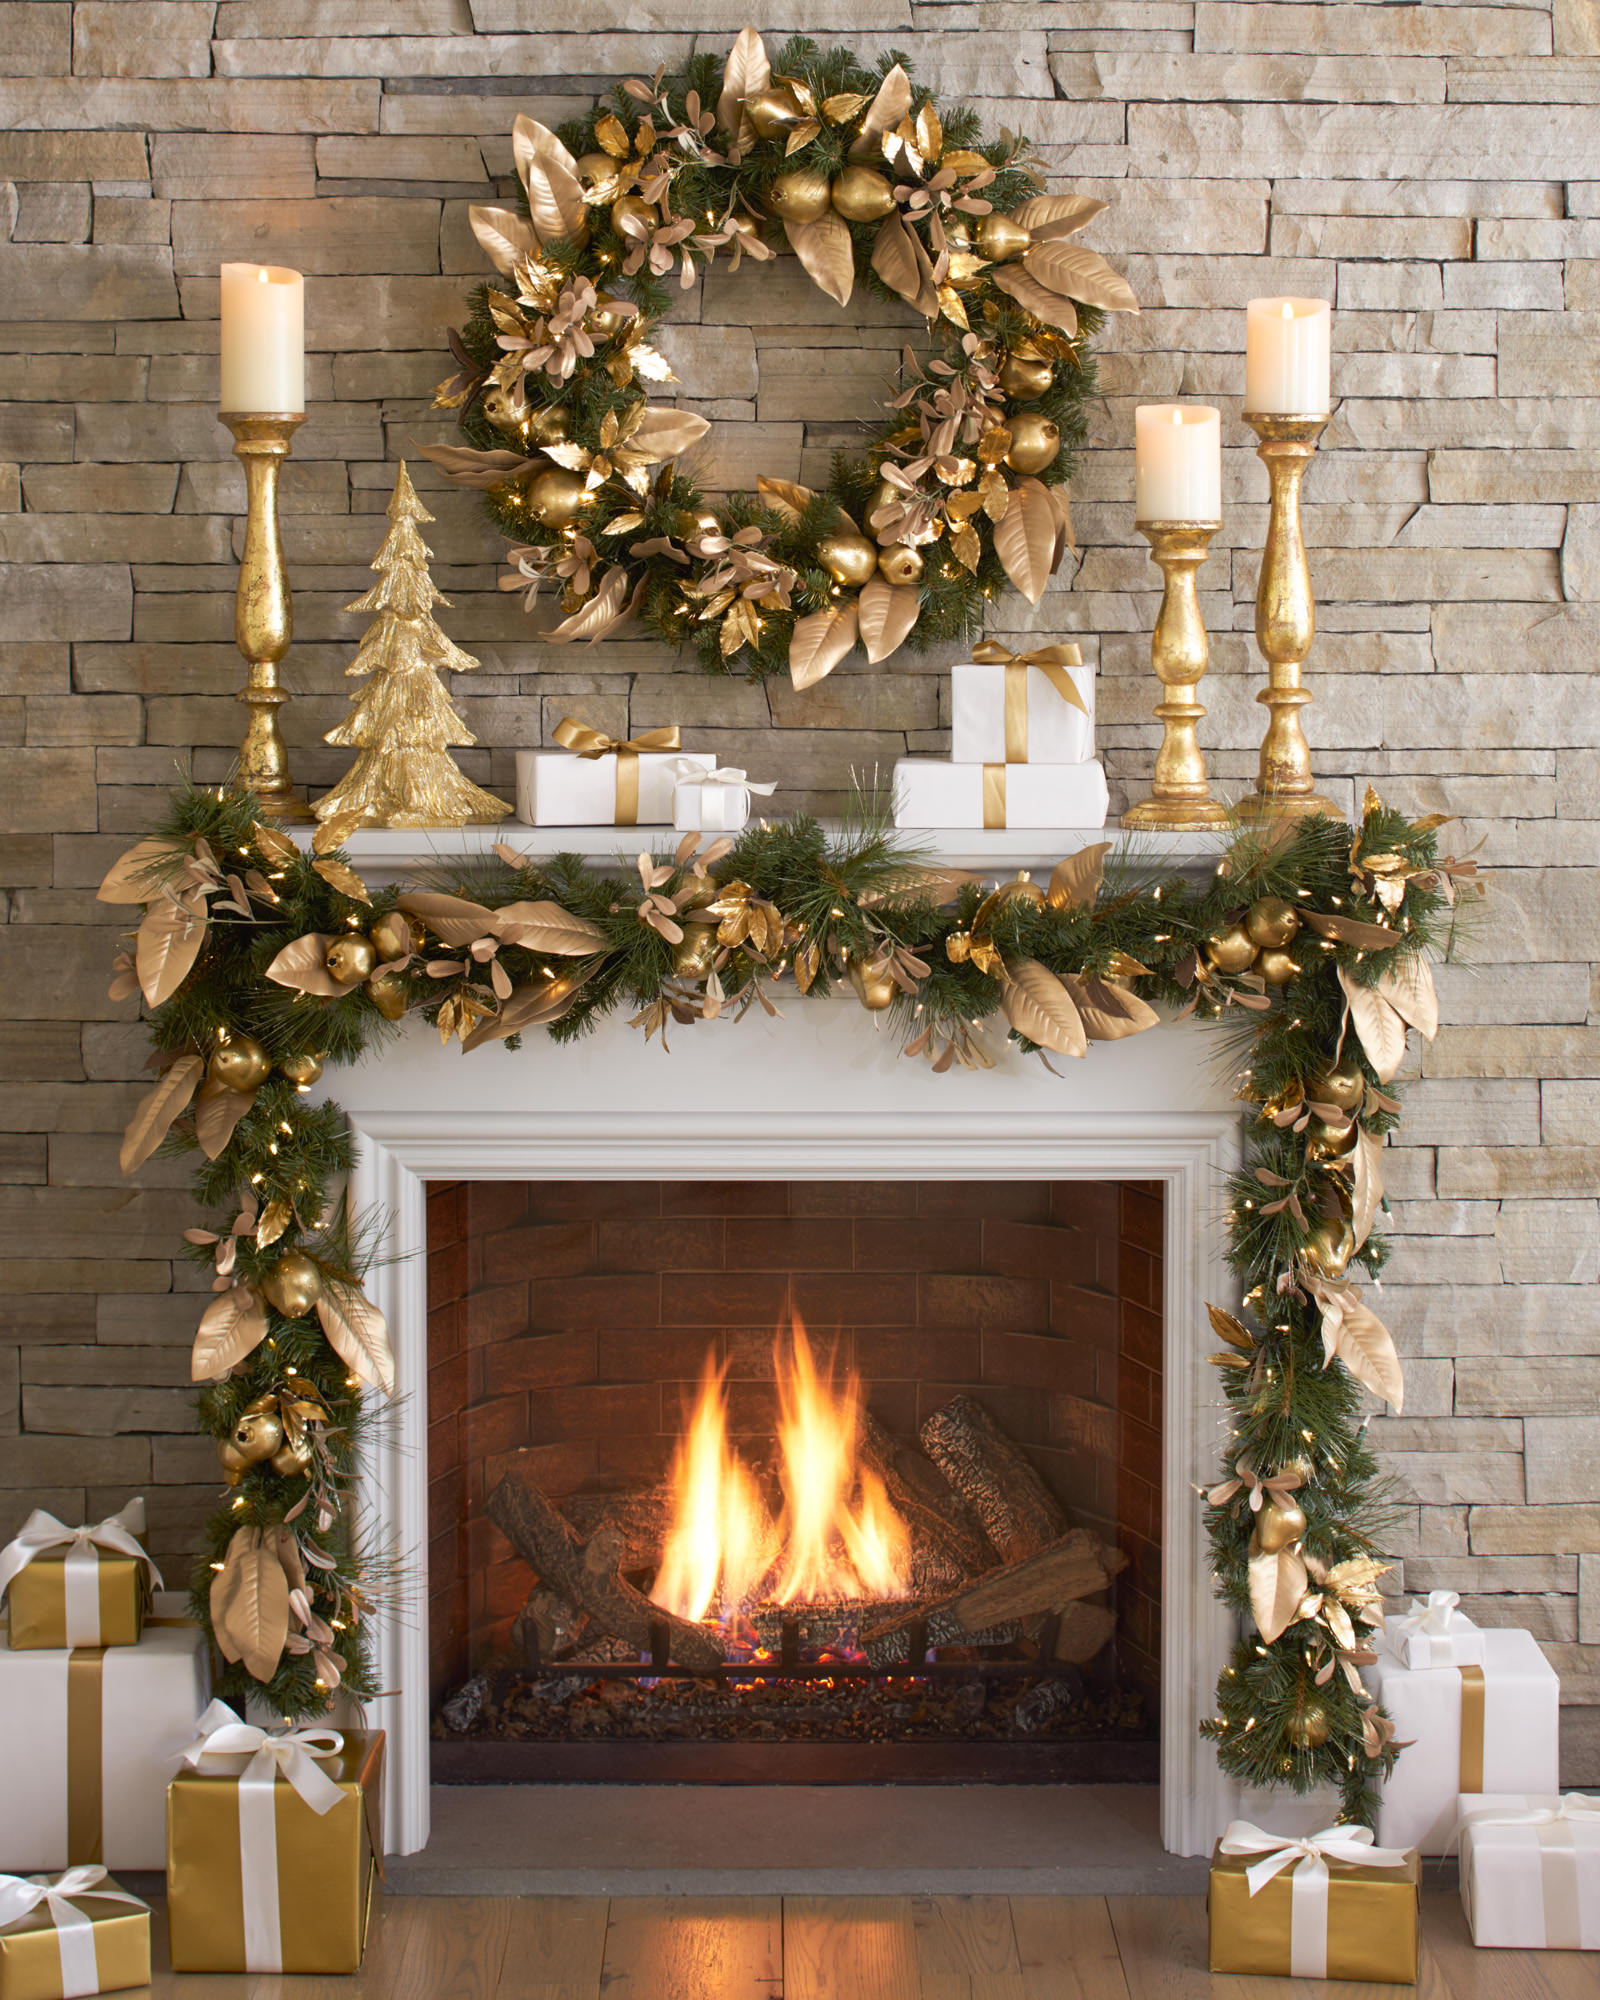 decorate with presents - Christmas Mantel Decorating Ideas